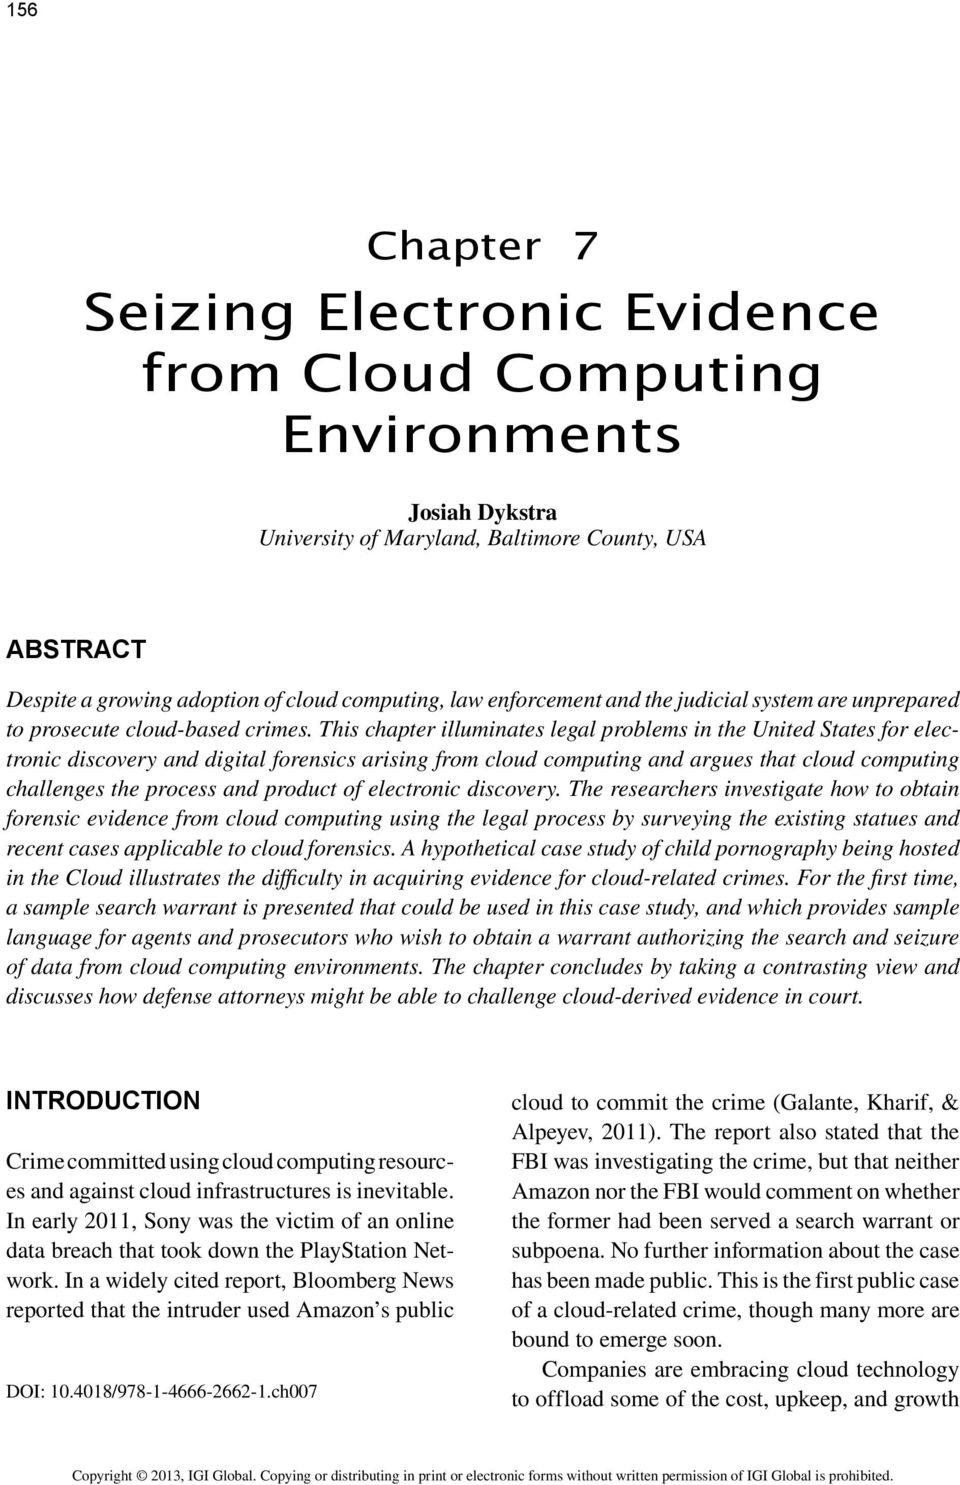 This chapter illuminates legal problems in the United States for electronic discovery and digital forensics arising from cloud computing and argues that cloud computing challenges the process and